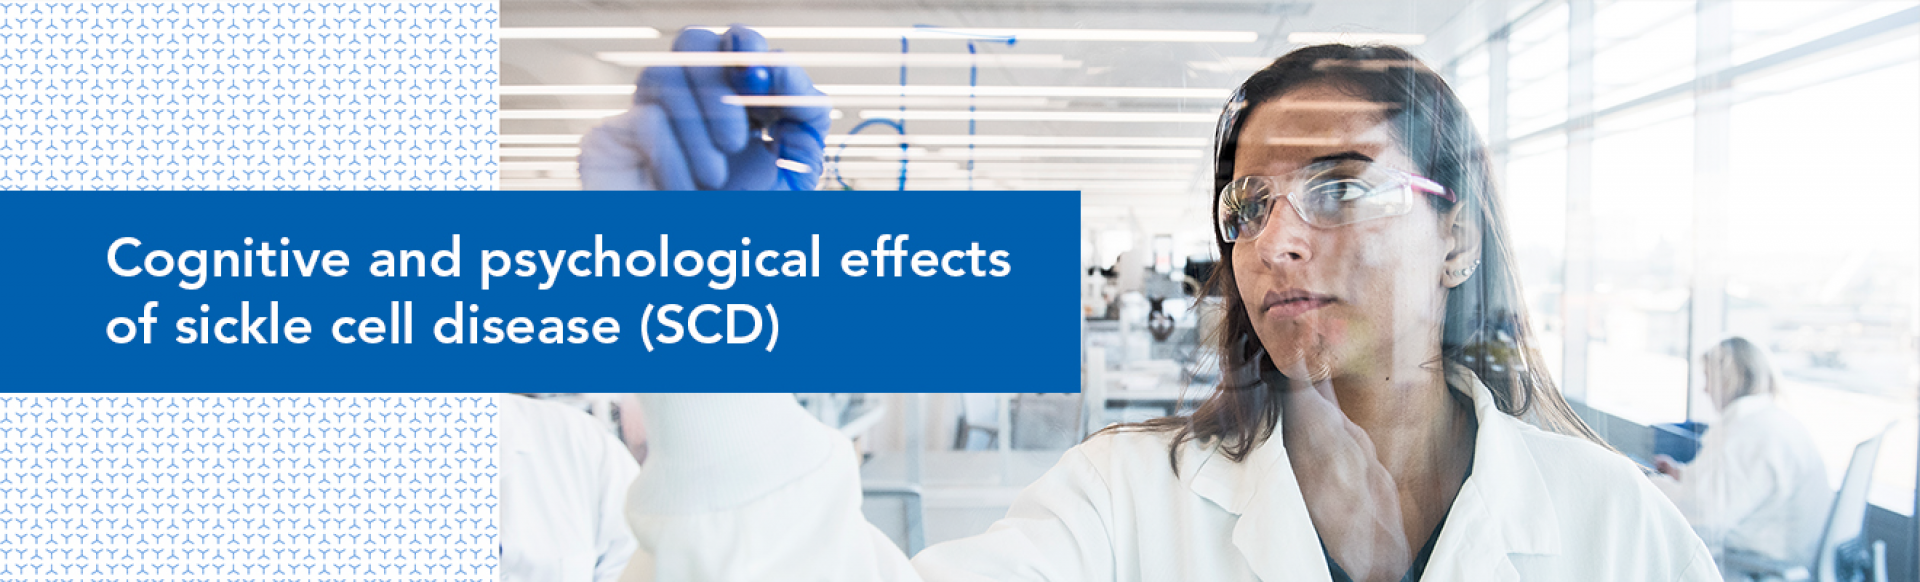 Impacts of SCD – cognitive and psychological